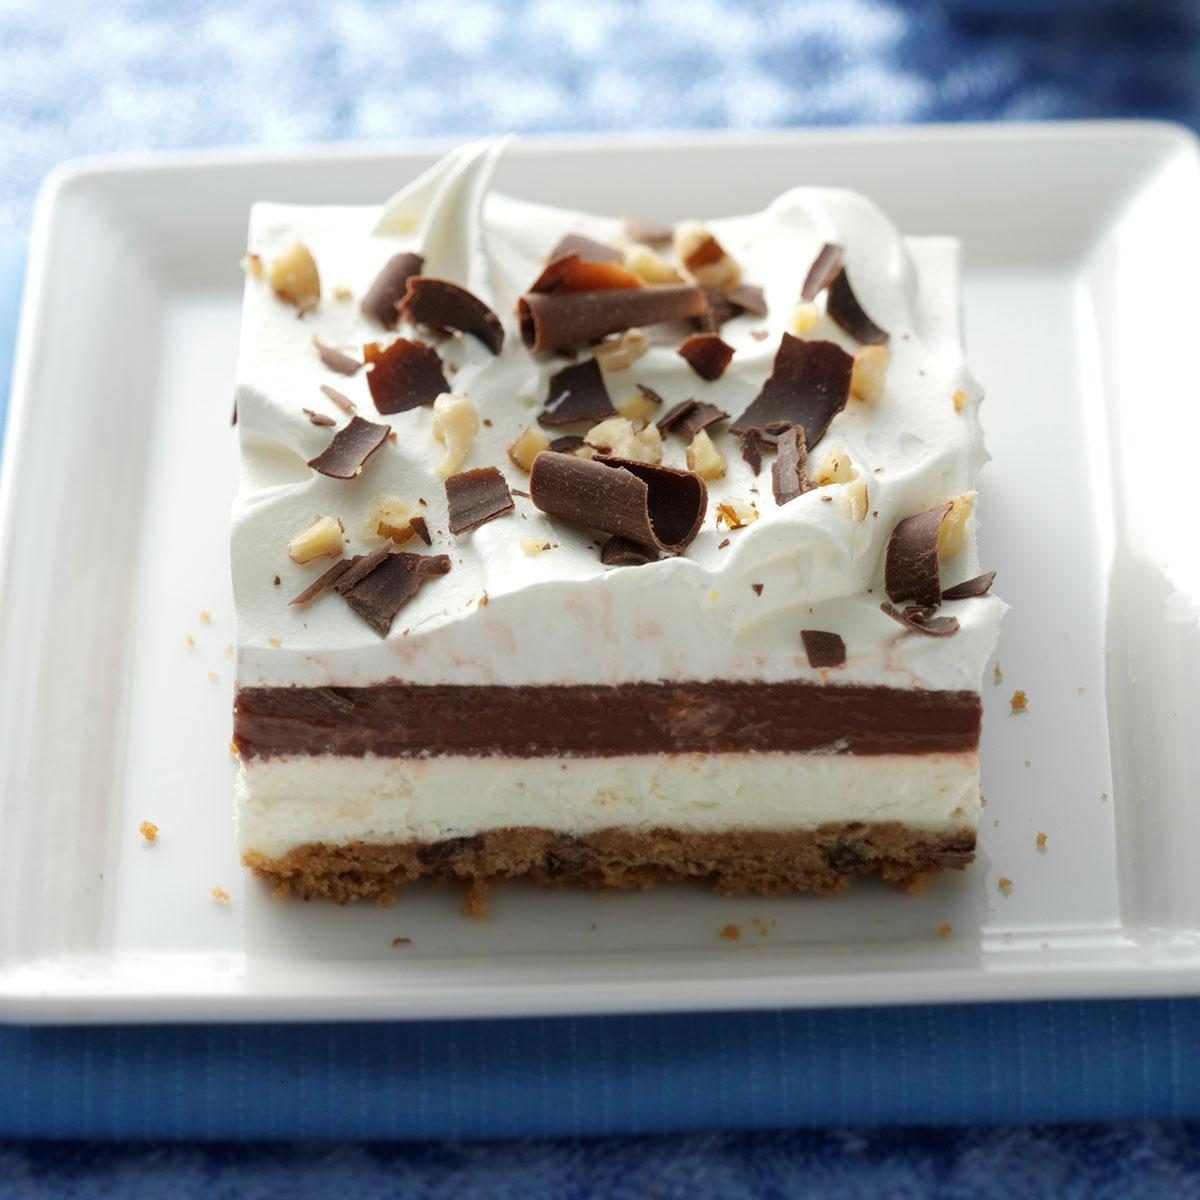 35+ No-Bake Desserts That Are Insanely Easy to Make. For when turning on the oven is just too much.